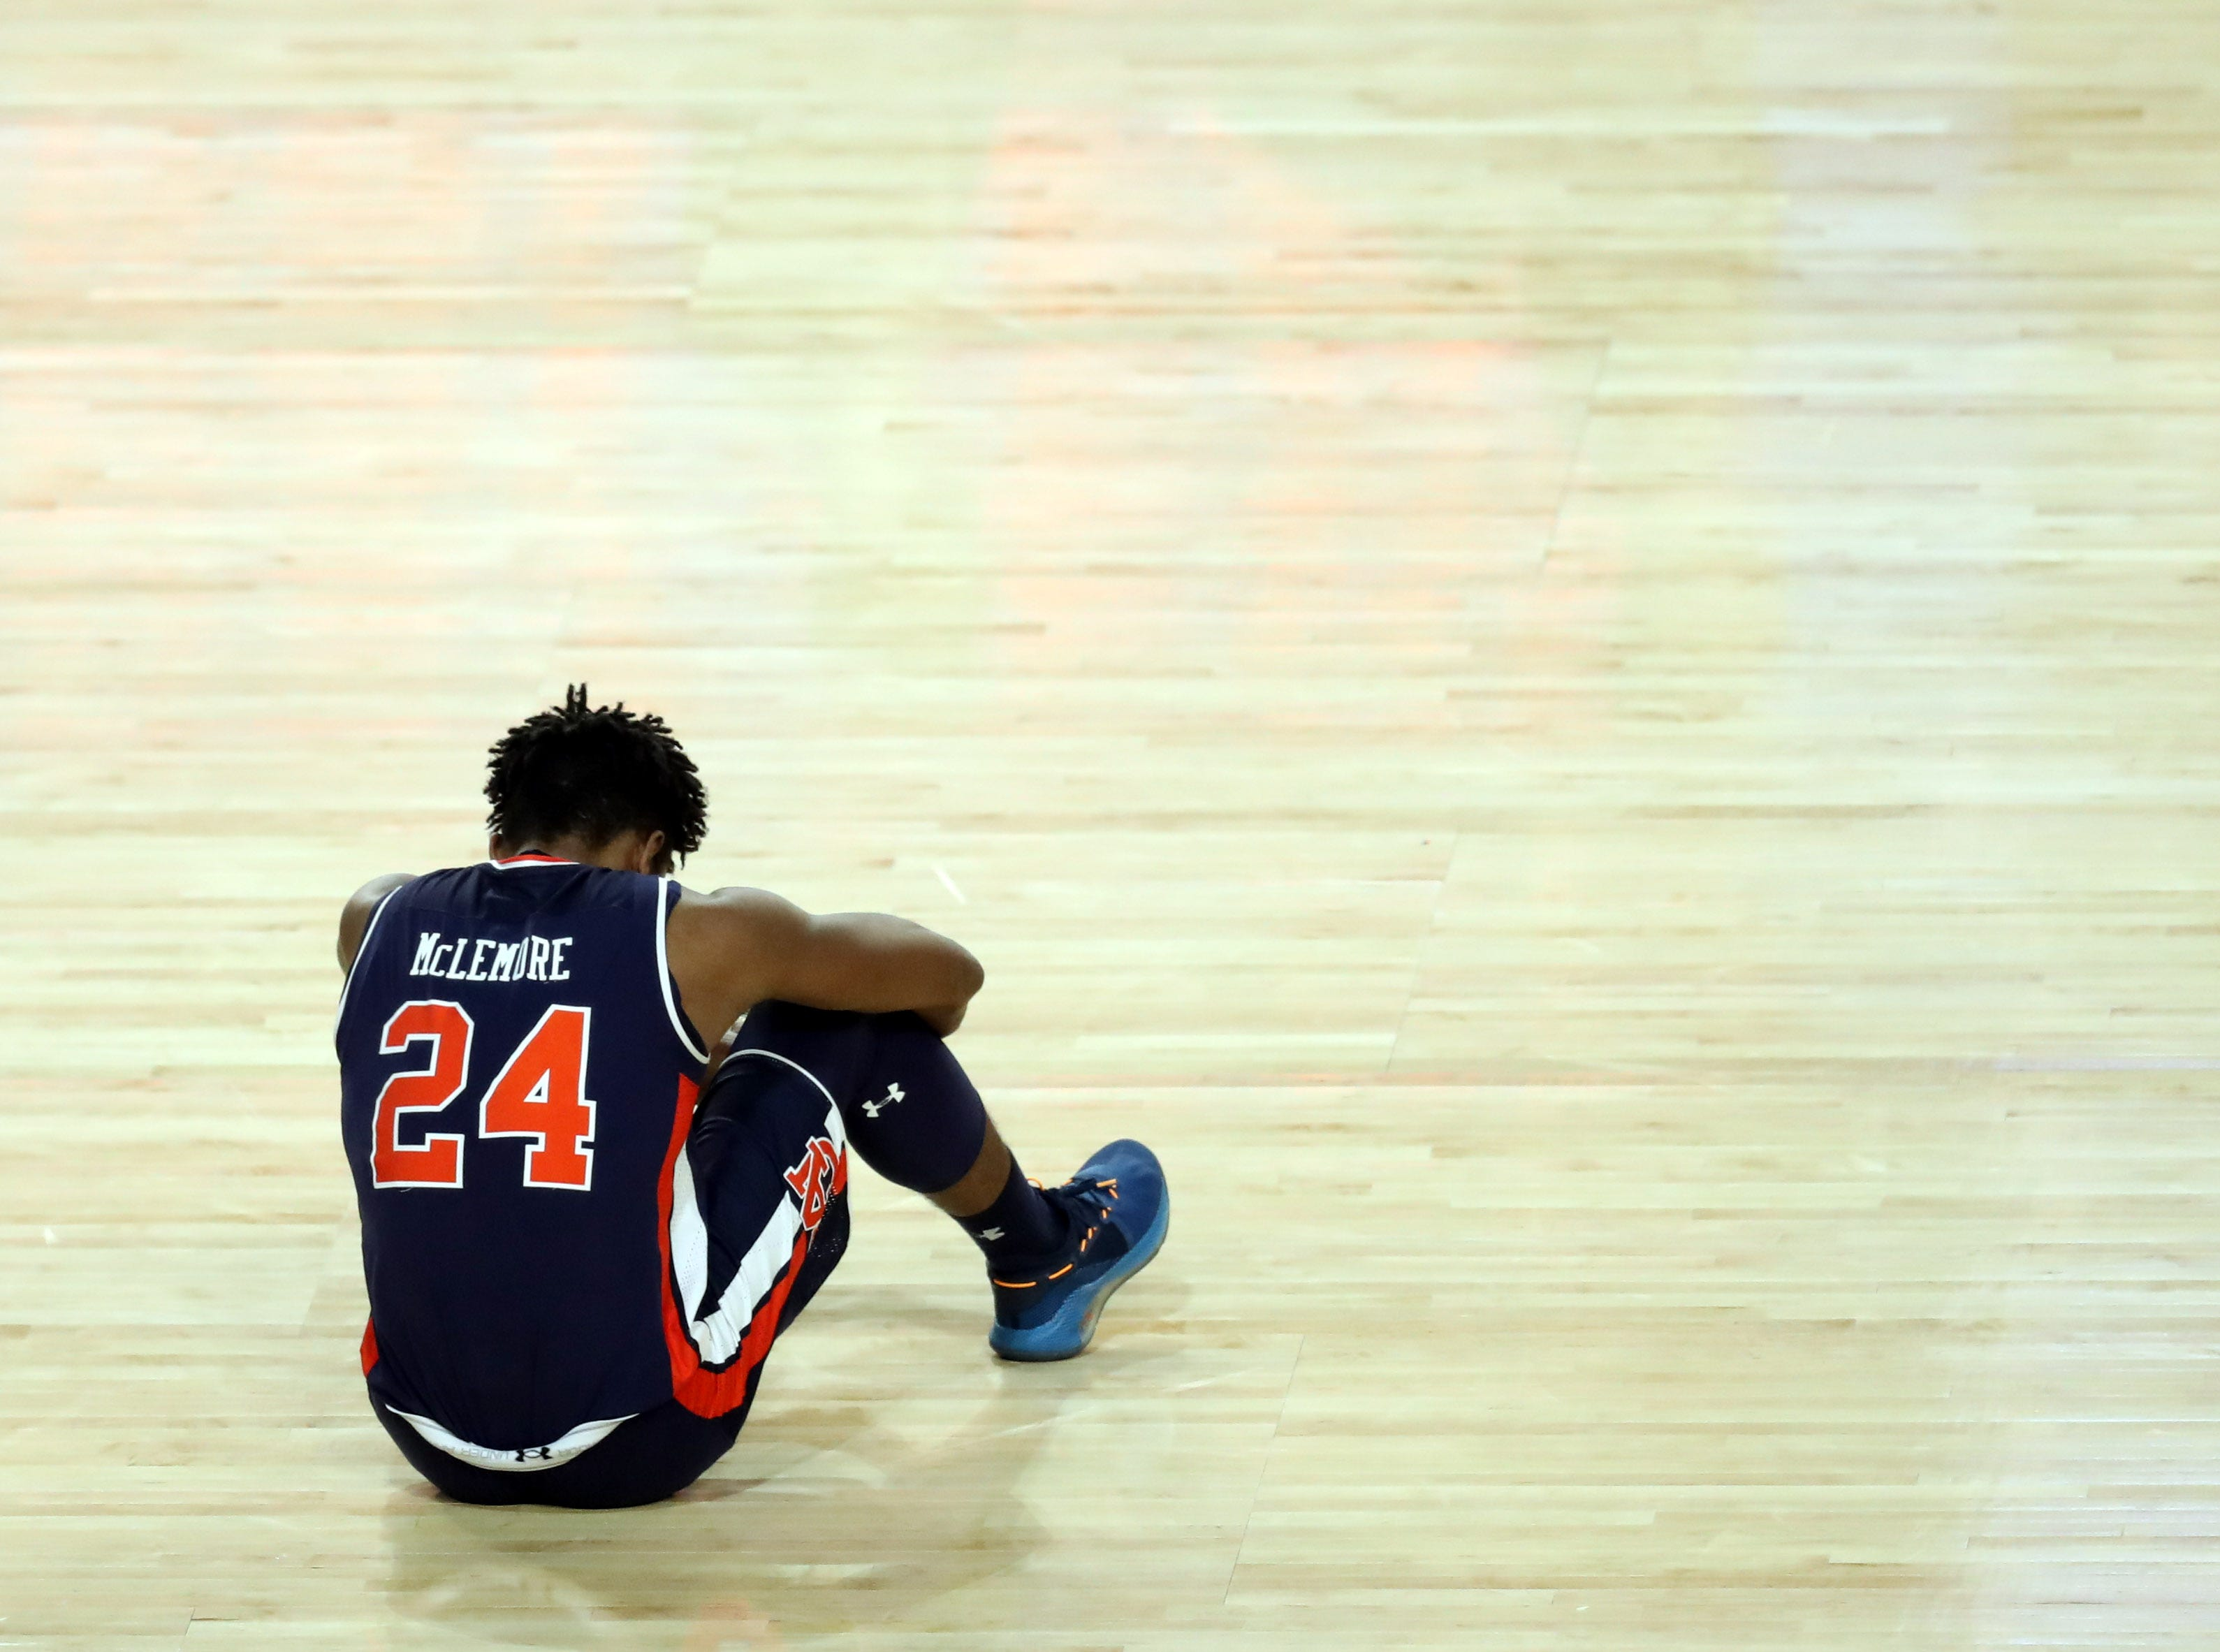 Final Four: No. 5 Auburn loses to No. 1 Virginia, 63-62.